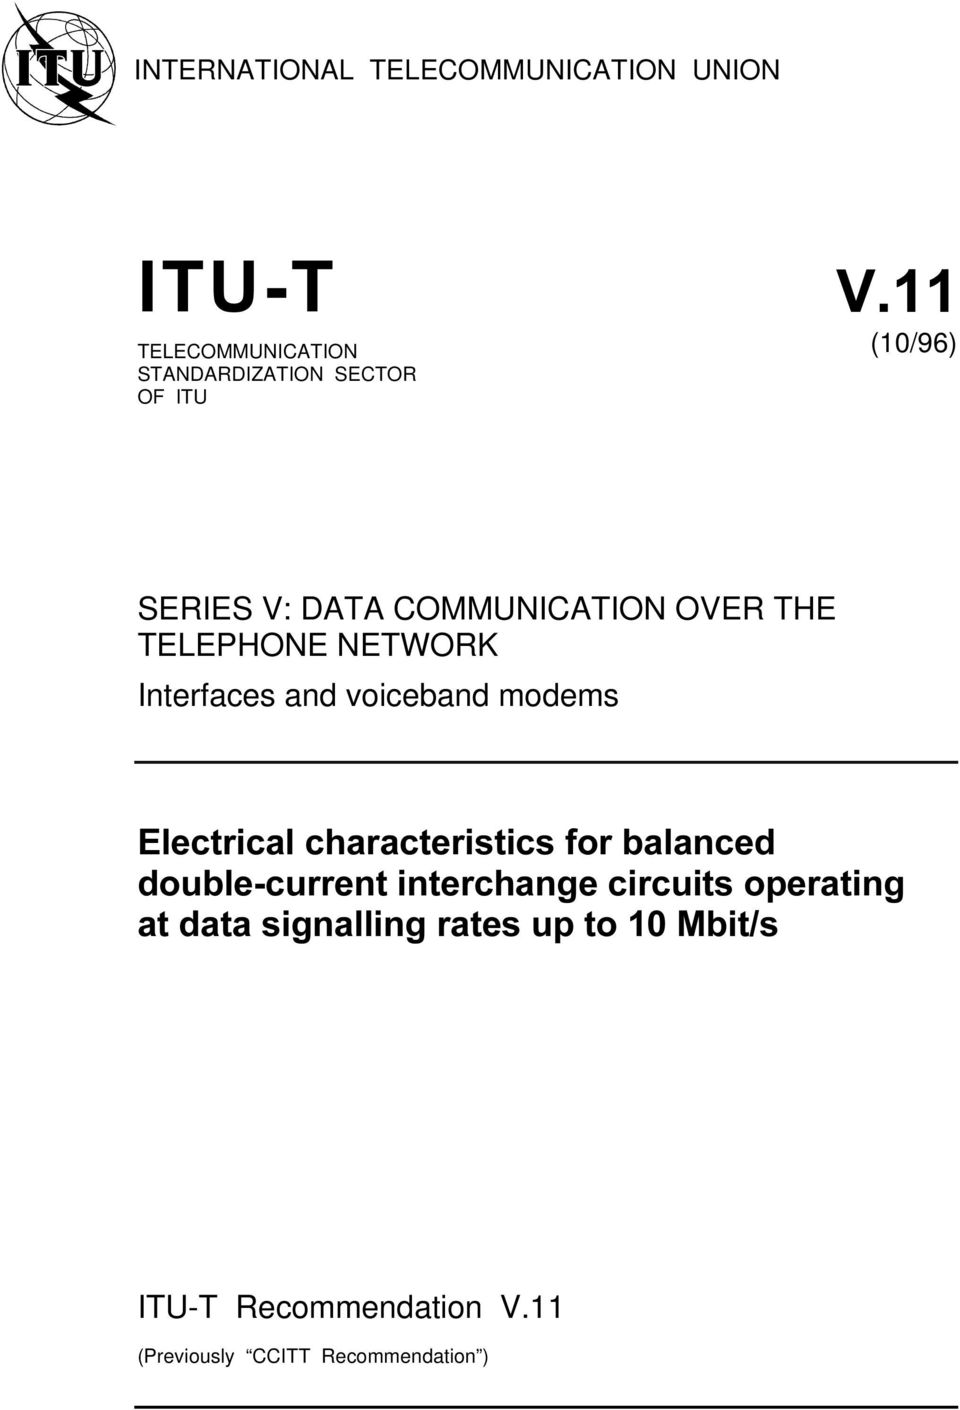 modems %LECTRICAL CHARACTERISTICS FOR BALANCED DOUBLECURRENT INTERCHANGE CIRCUITS OPERATING